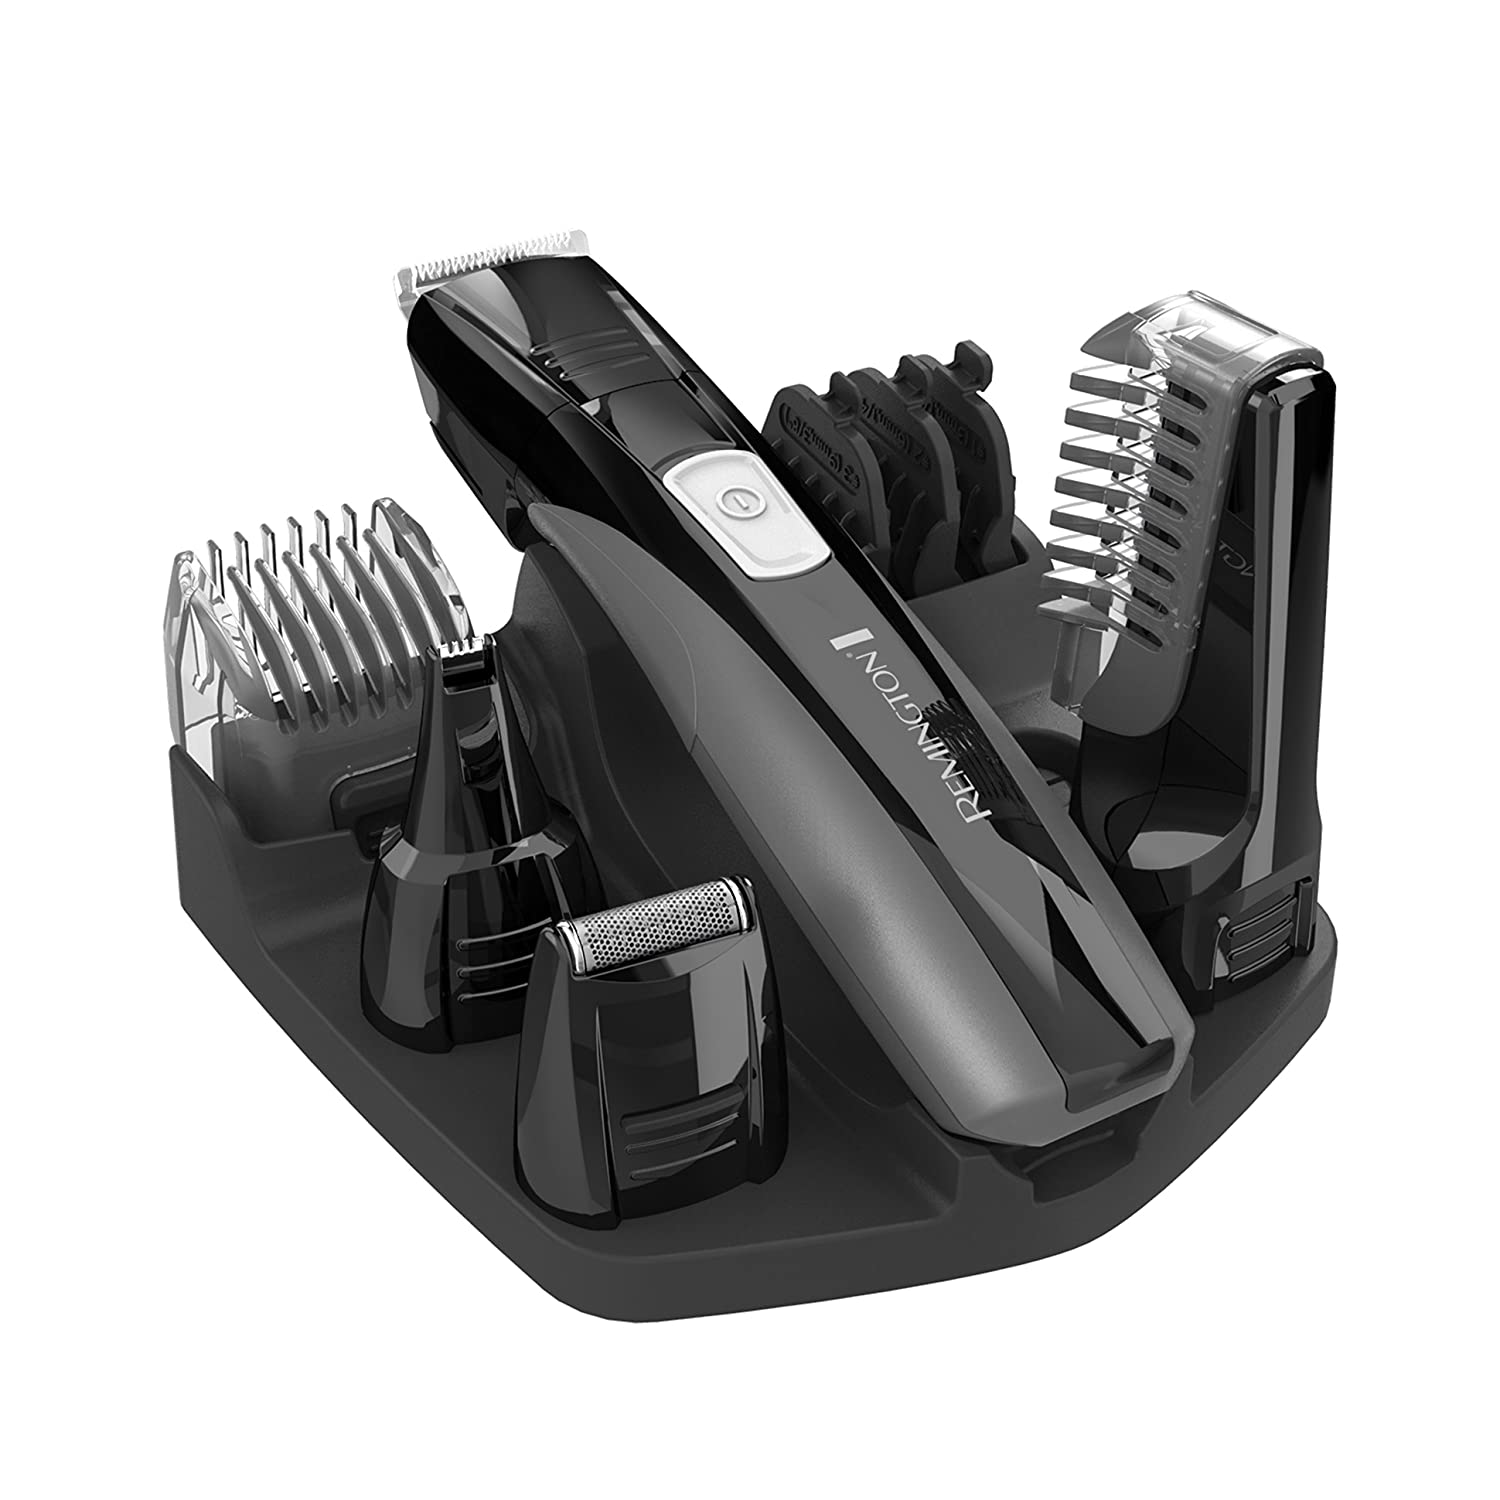 Best Body Groomers Remington PG525 Groomer Kit